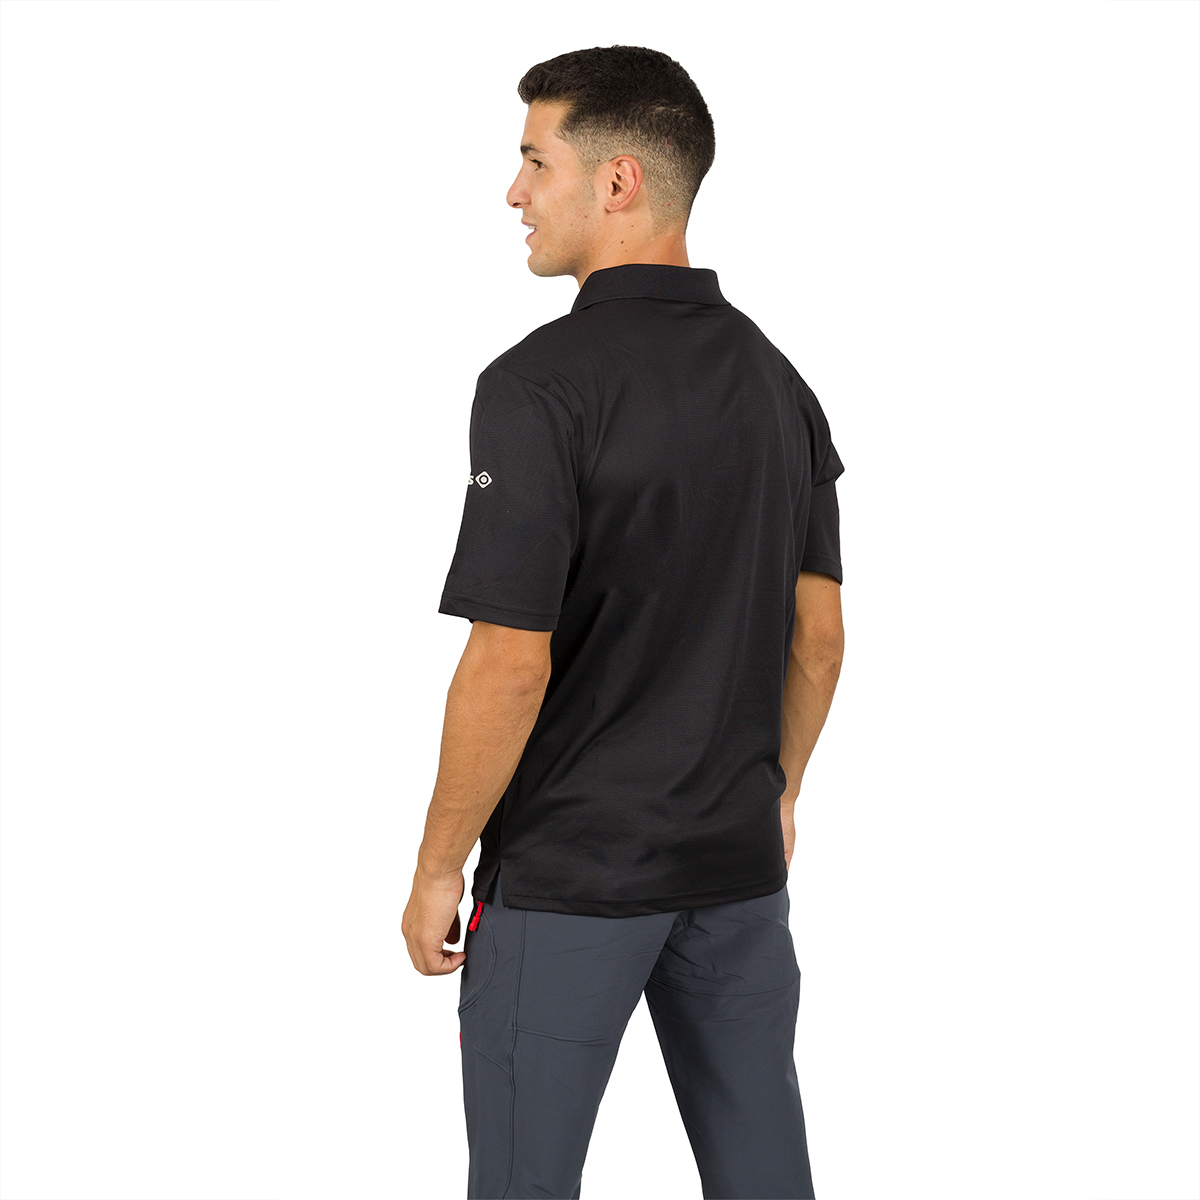 MAN'S ACAY POLO T-SHIRT BLACK